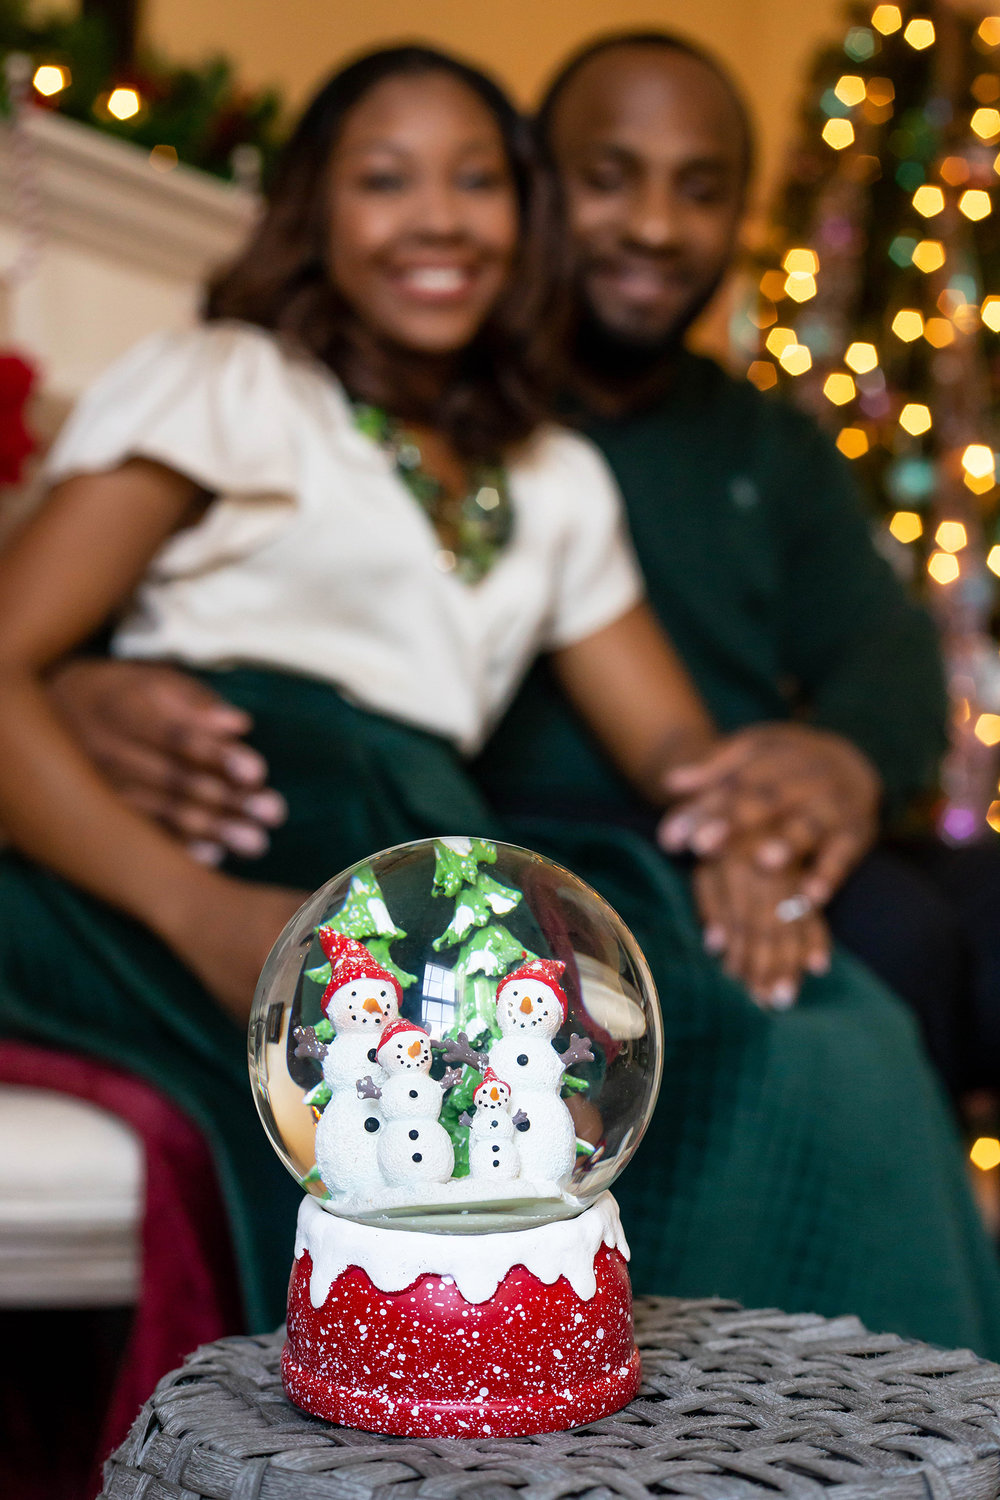 Photo of snowman family snow globe with couple smiling in the background